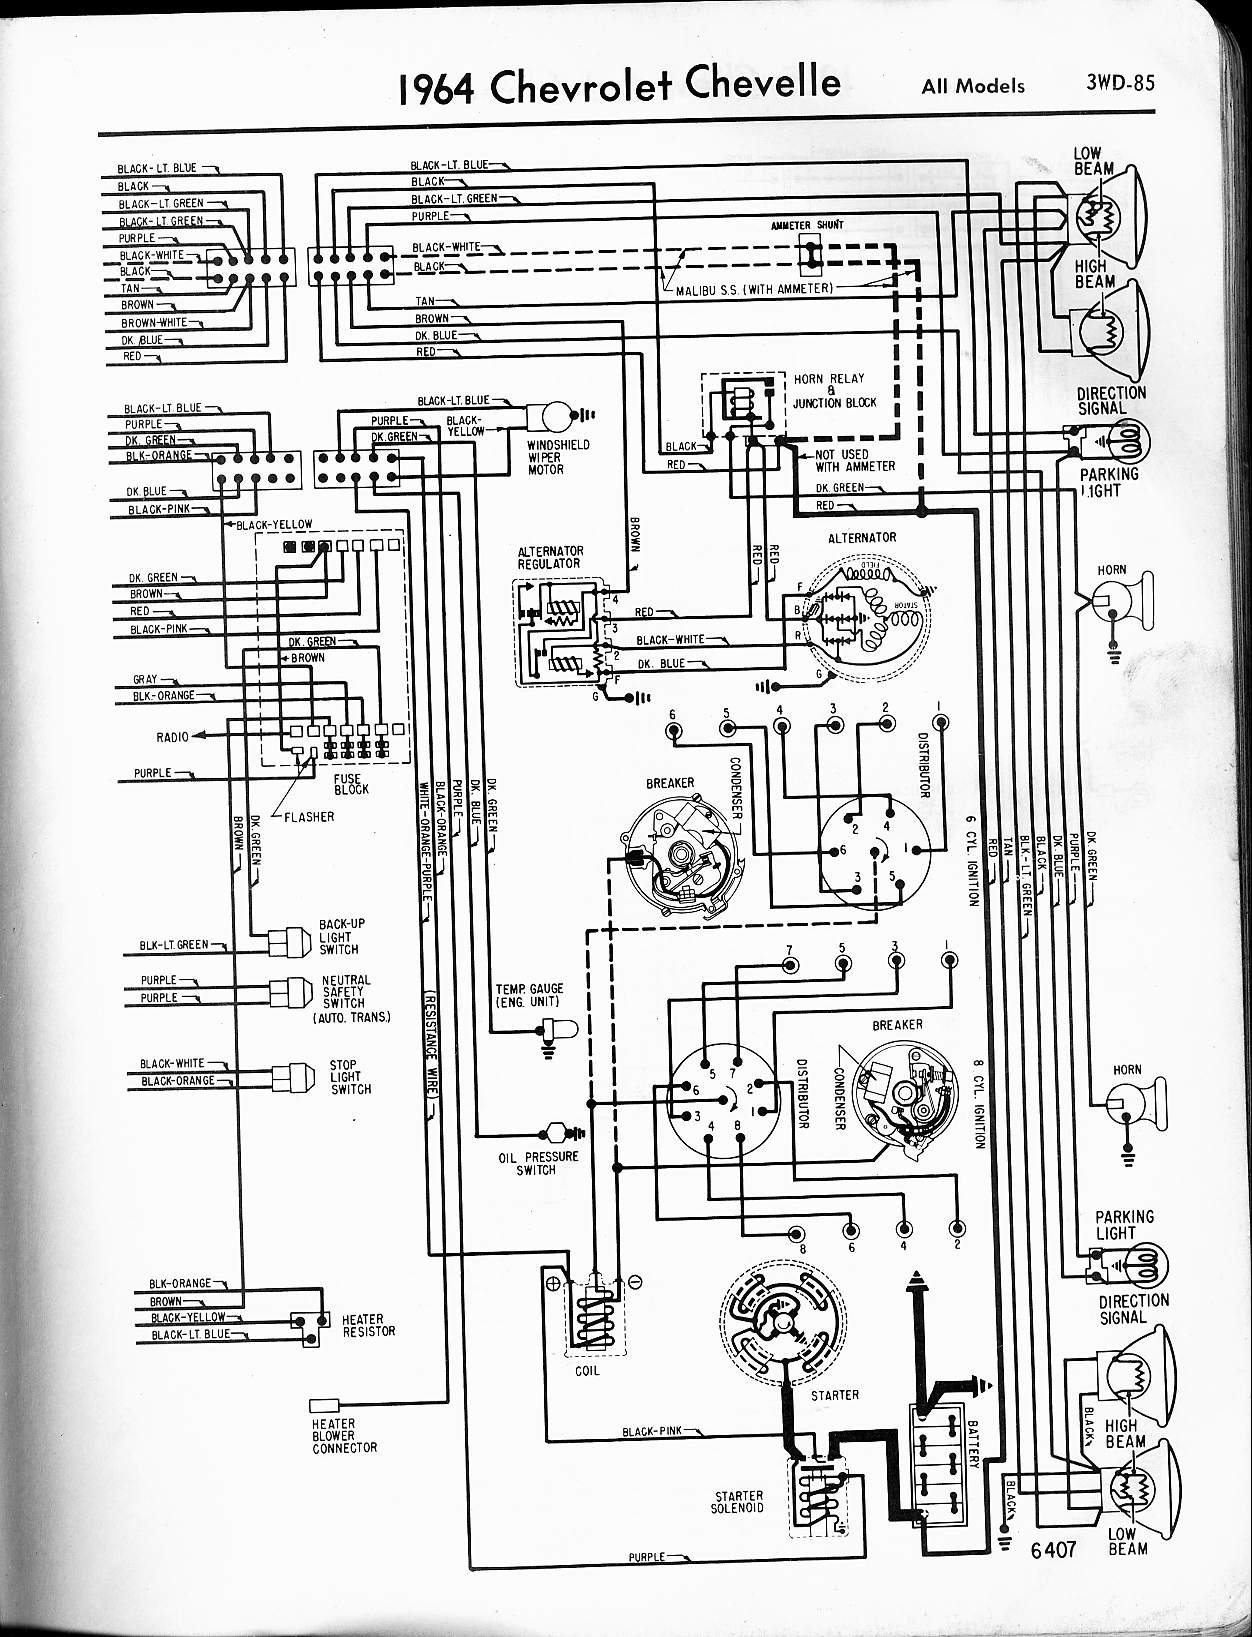 diagram] 66 chevelle tach wiring diagram schematic full version hd quality diagram  schematic - jobdiagram99.puliziasconfinata.it  pulizia sconfinata